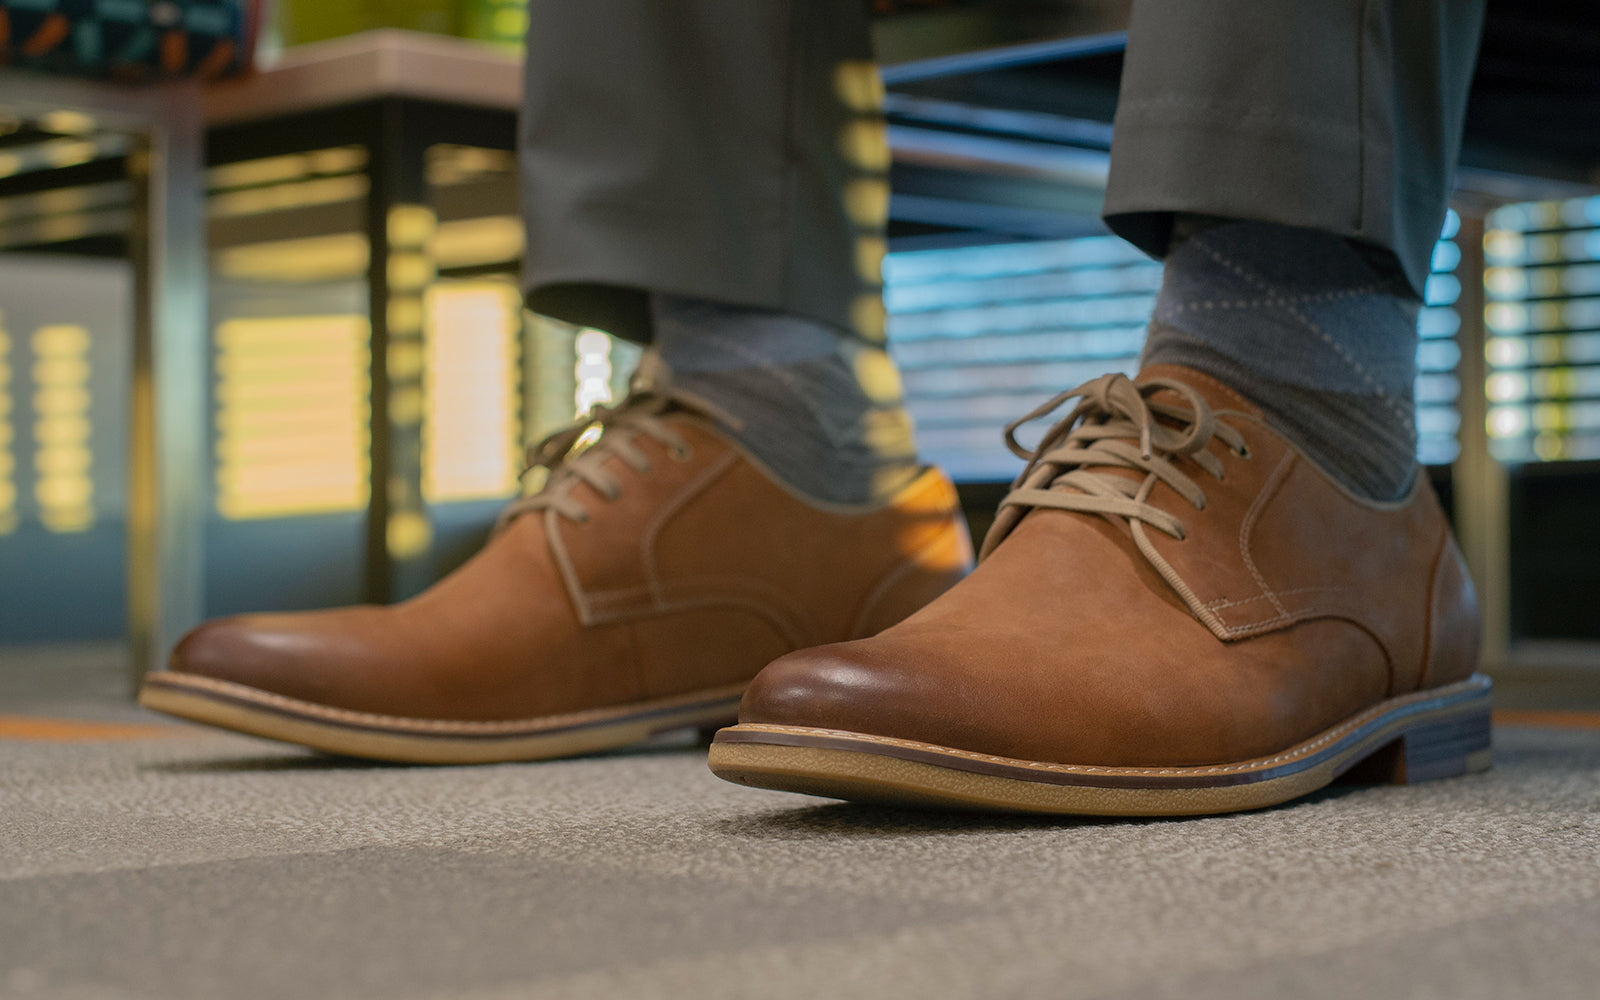 The best selection of Dockers mens dress and casual shoes